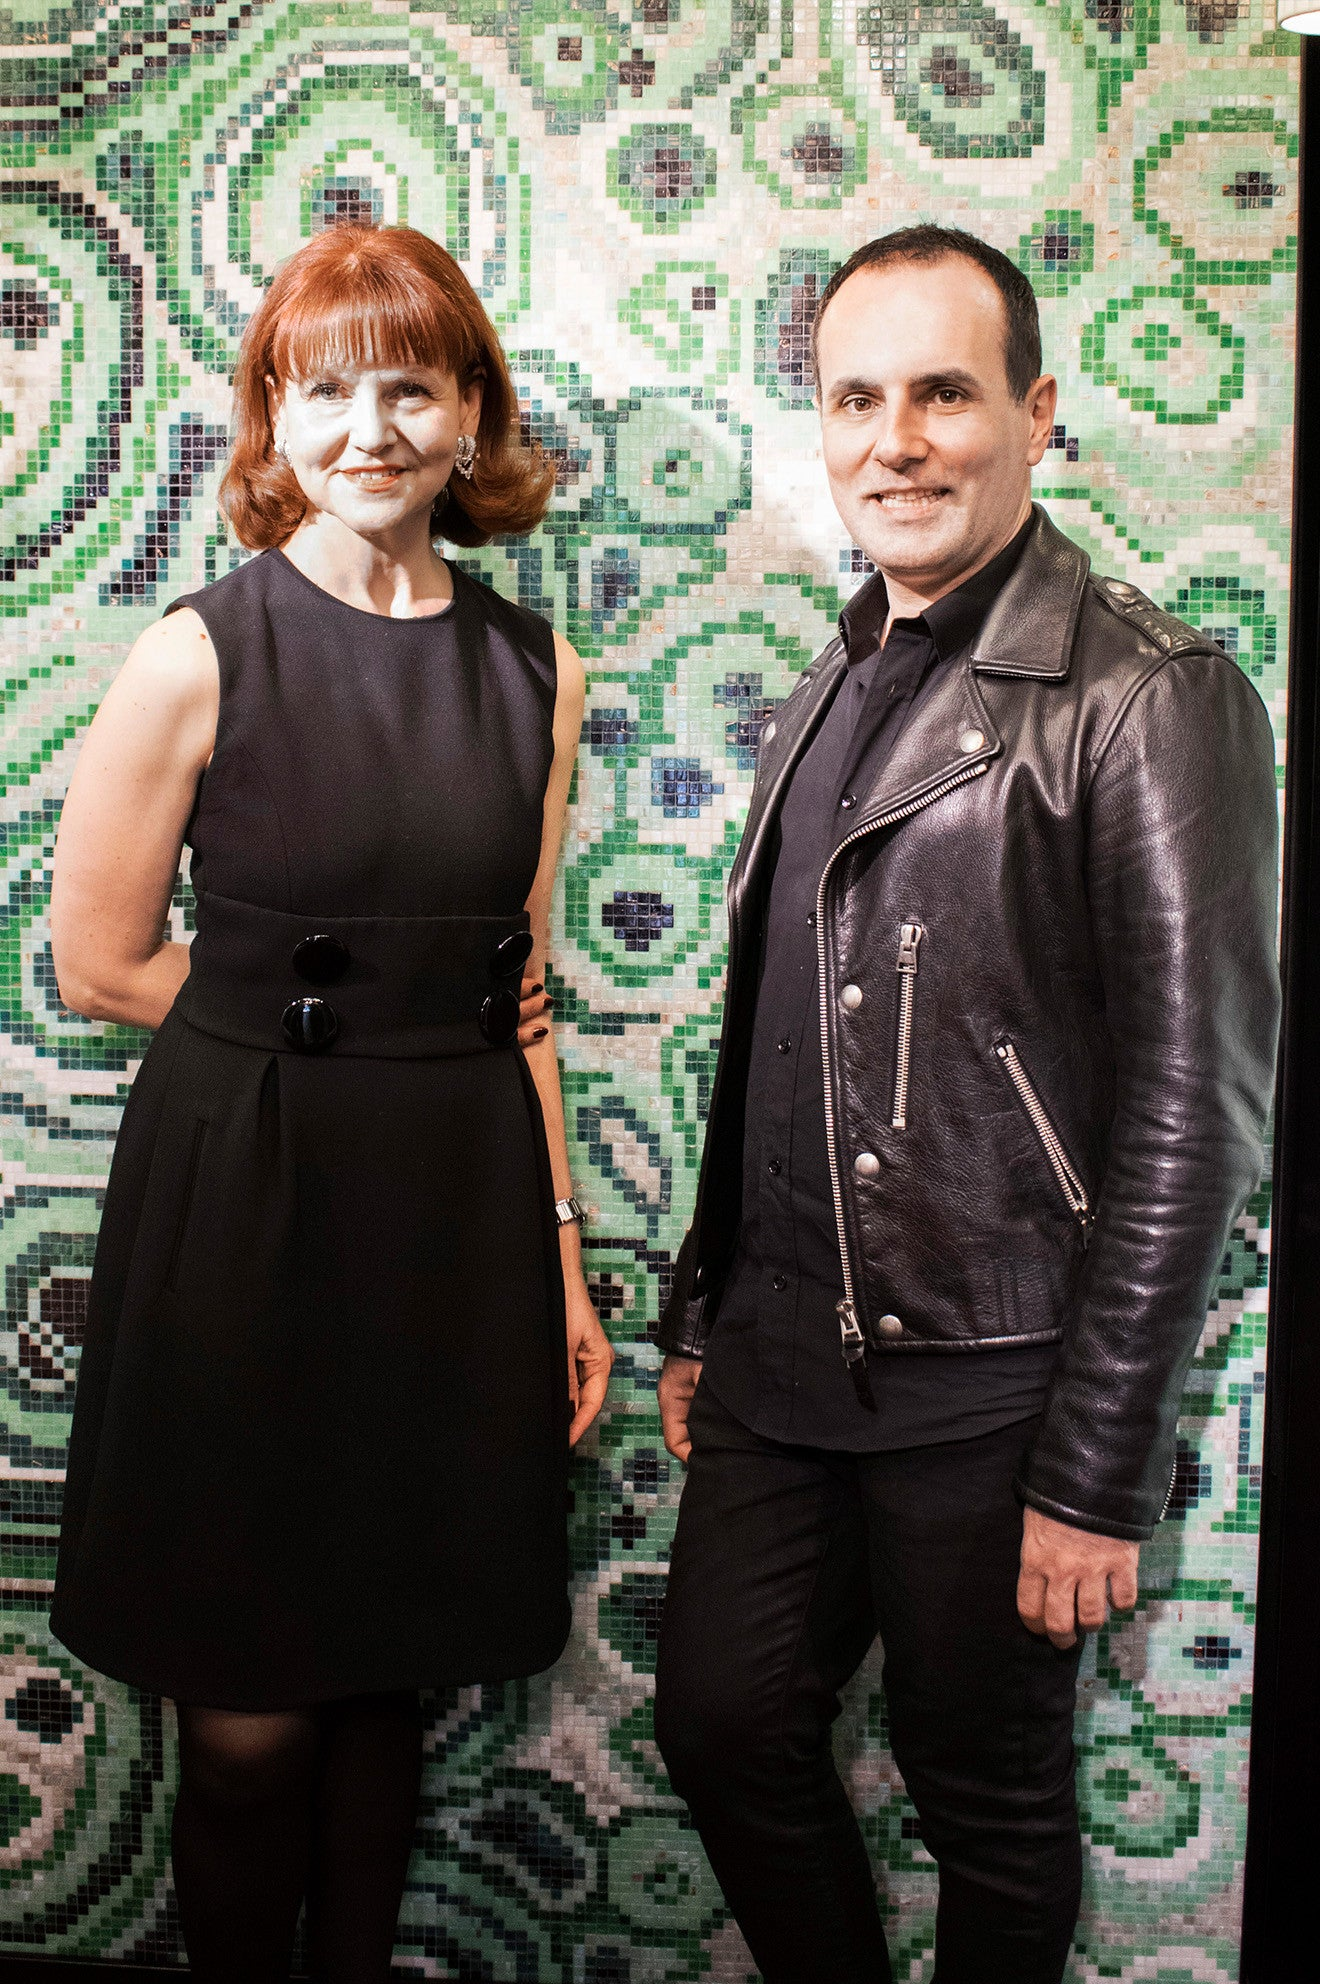 Rossella Bisazza and Greg Natale at the Bisazza showroom Milan